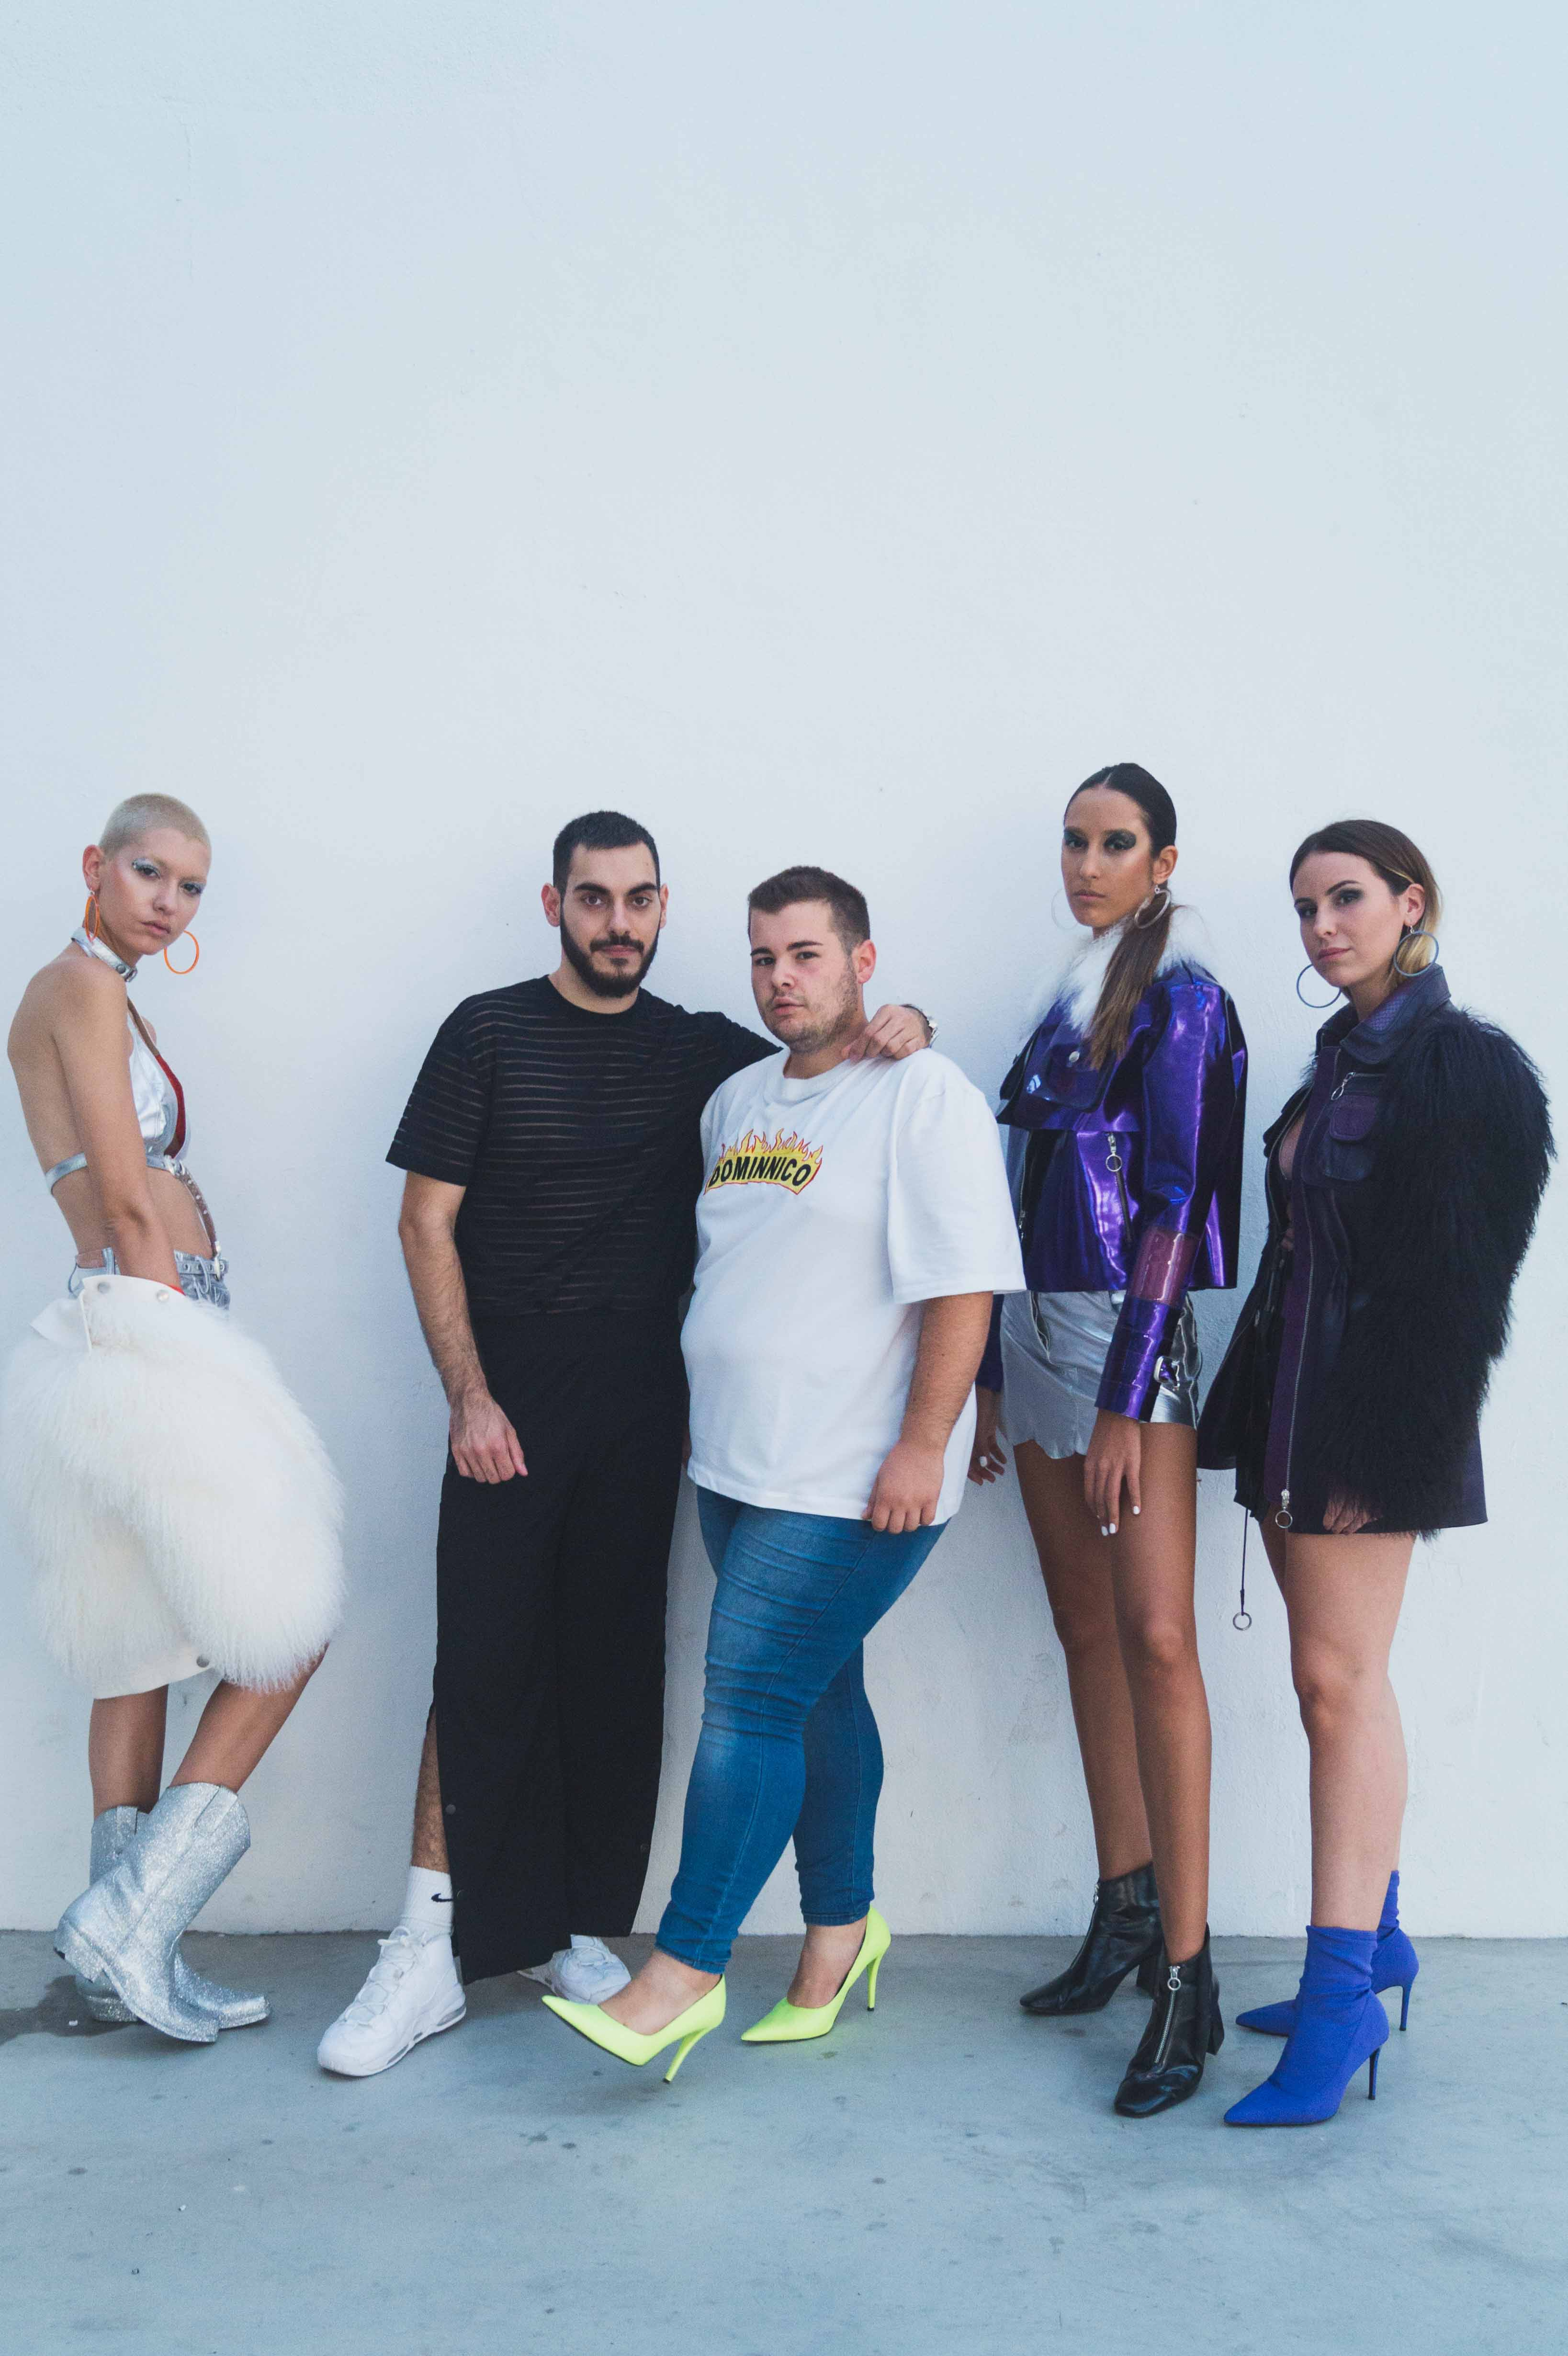 alicante-fashion-week-streetstyle-shit-magazine-victor-insomnia14